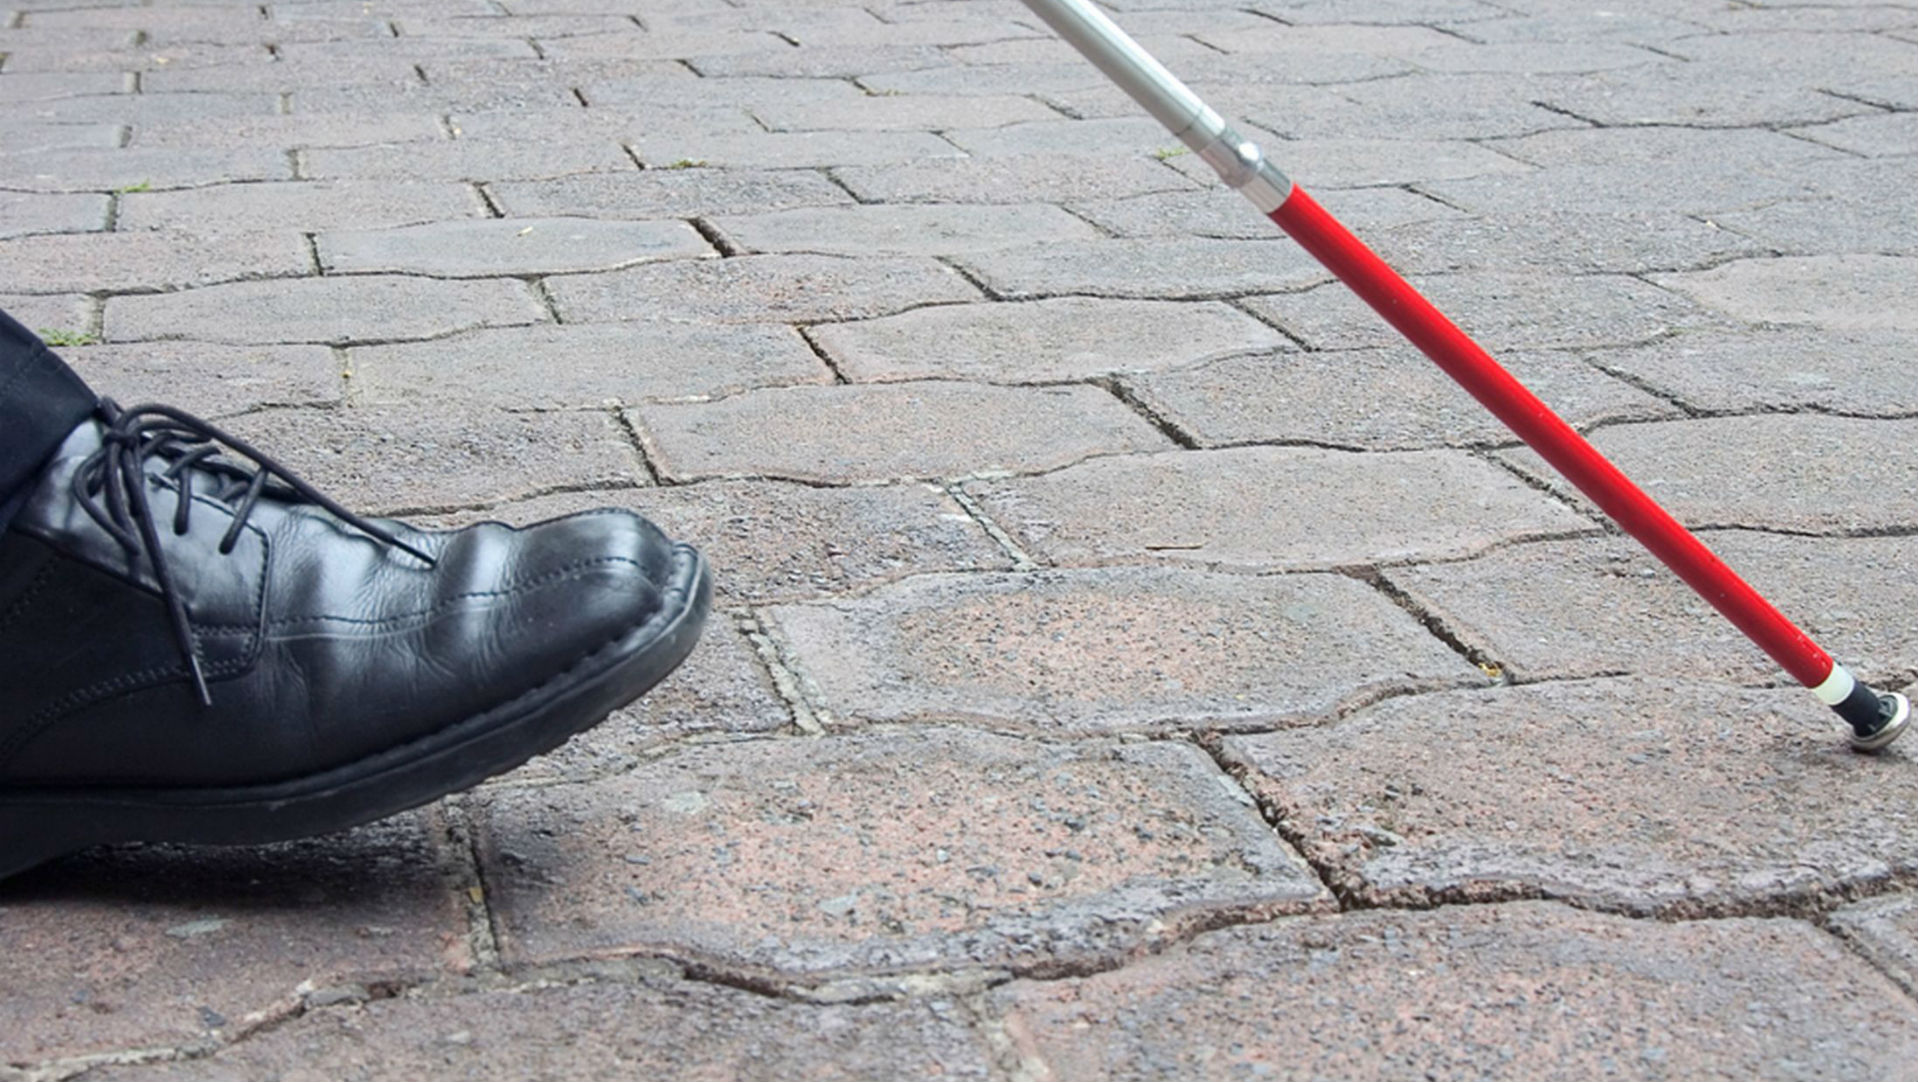 visually impaired person with cane on the ground